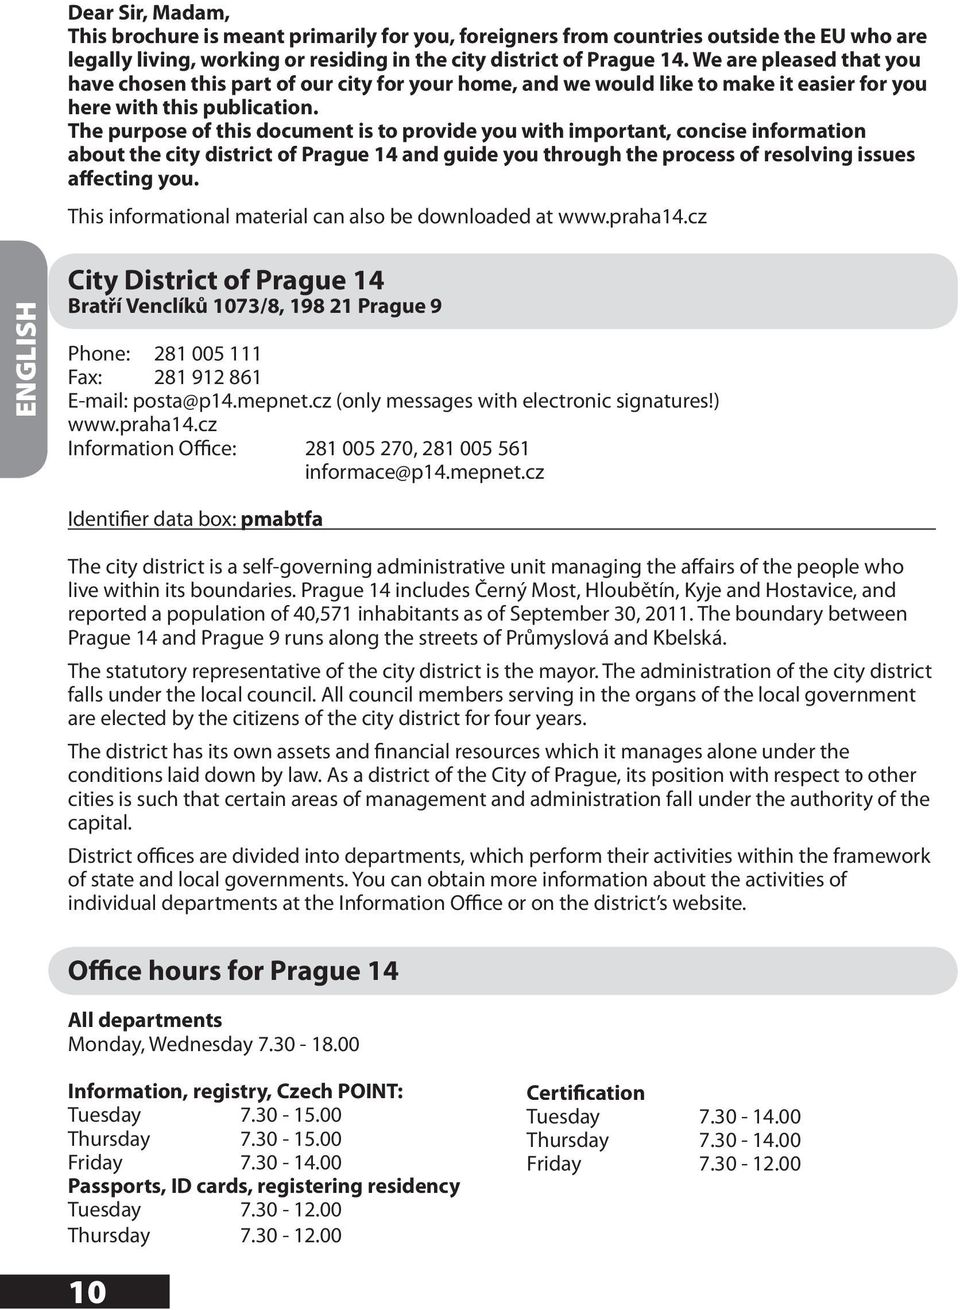 The purpose of this document is to provide you with important, concise information about the city district of Prague 14 and guide you through the process of resolving issues affecting you.